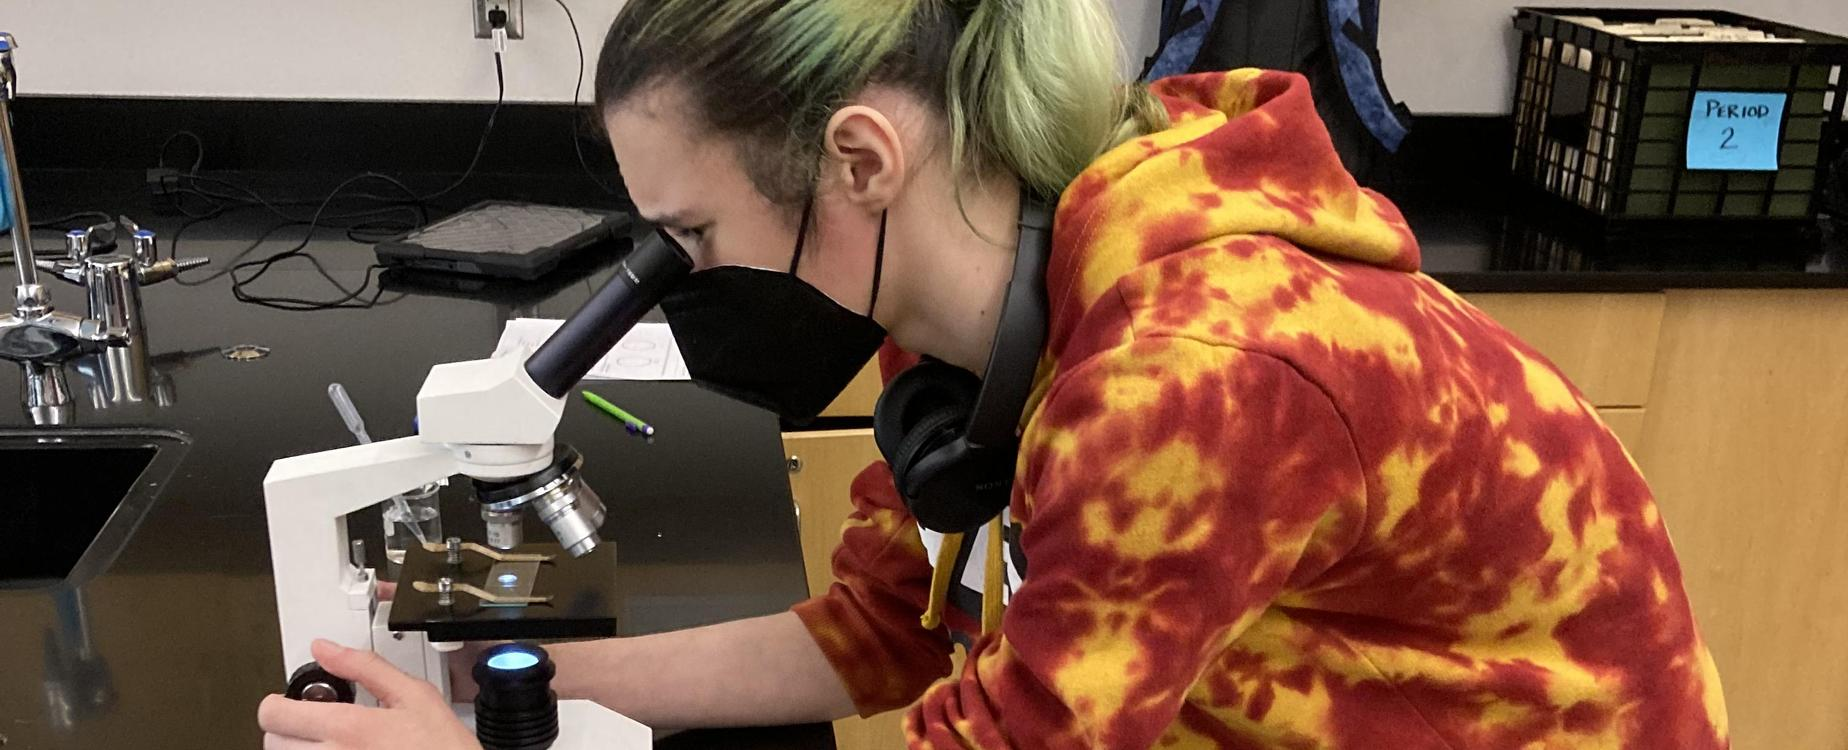 A student uses a microscope in a SHS science class